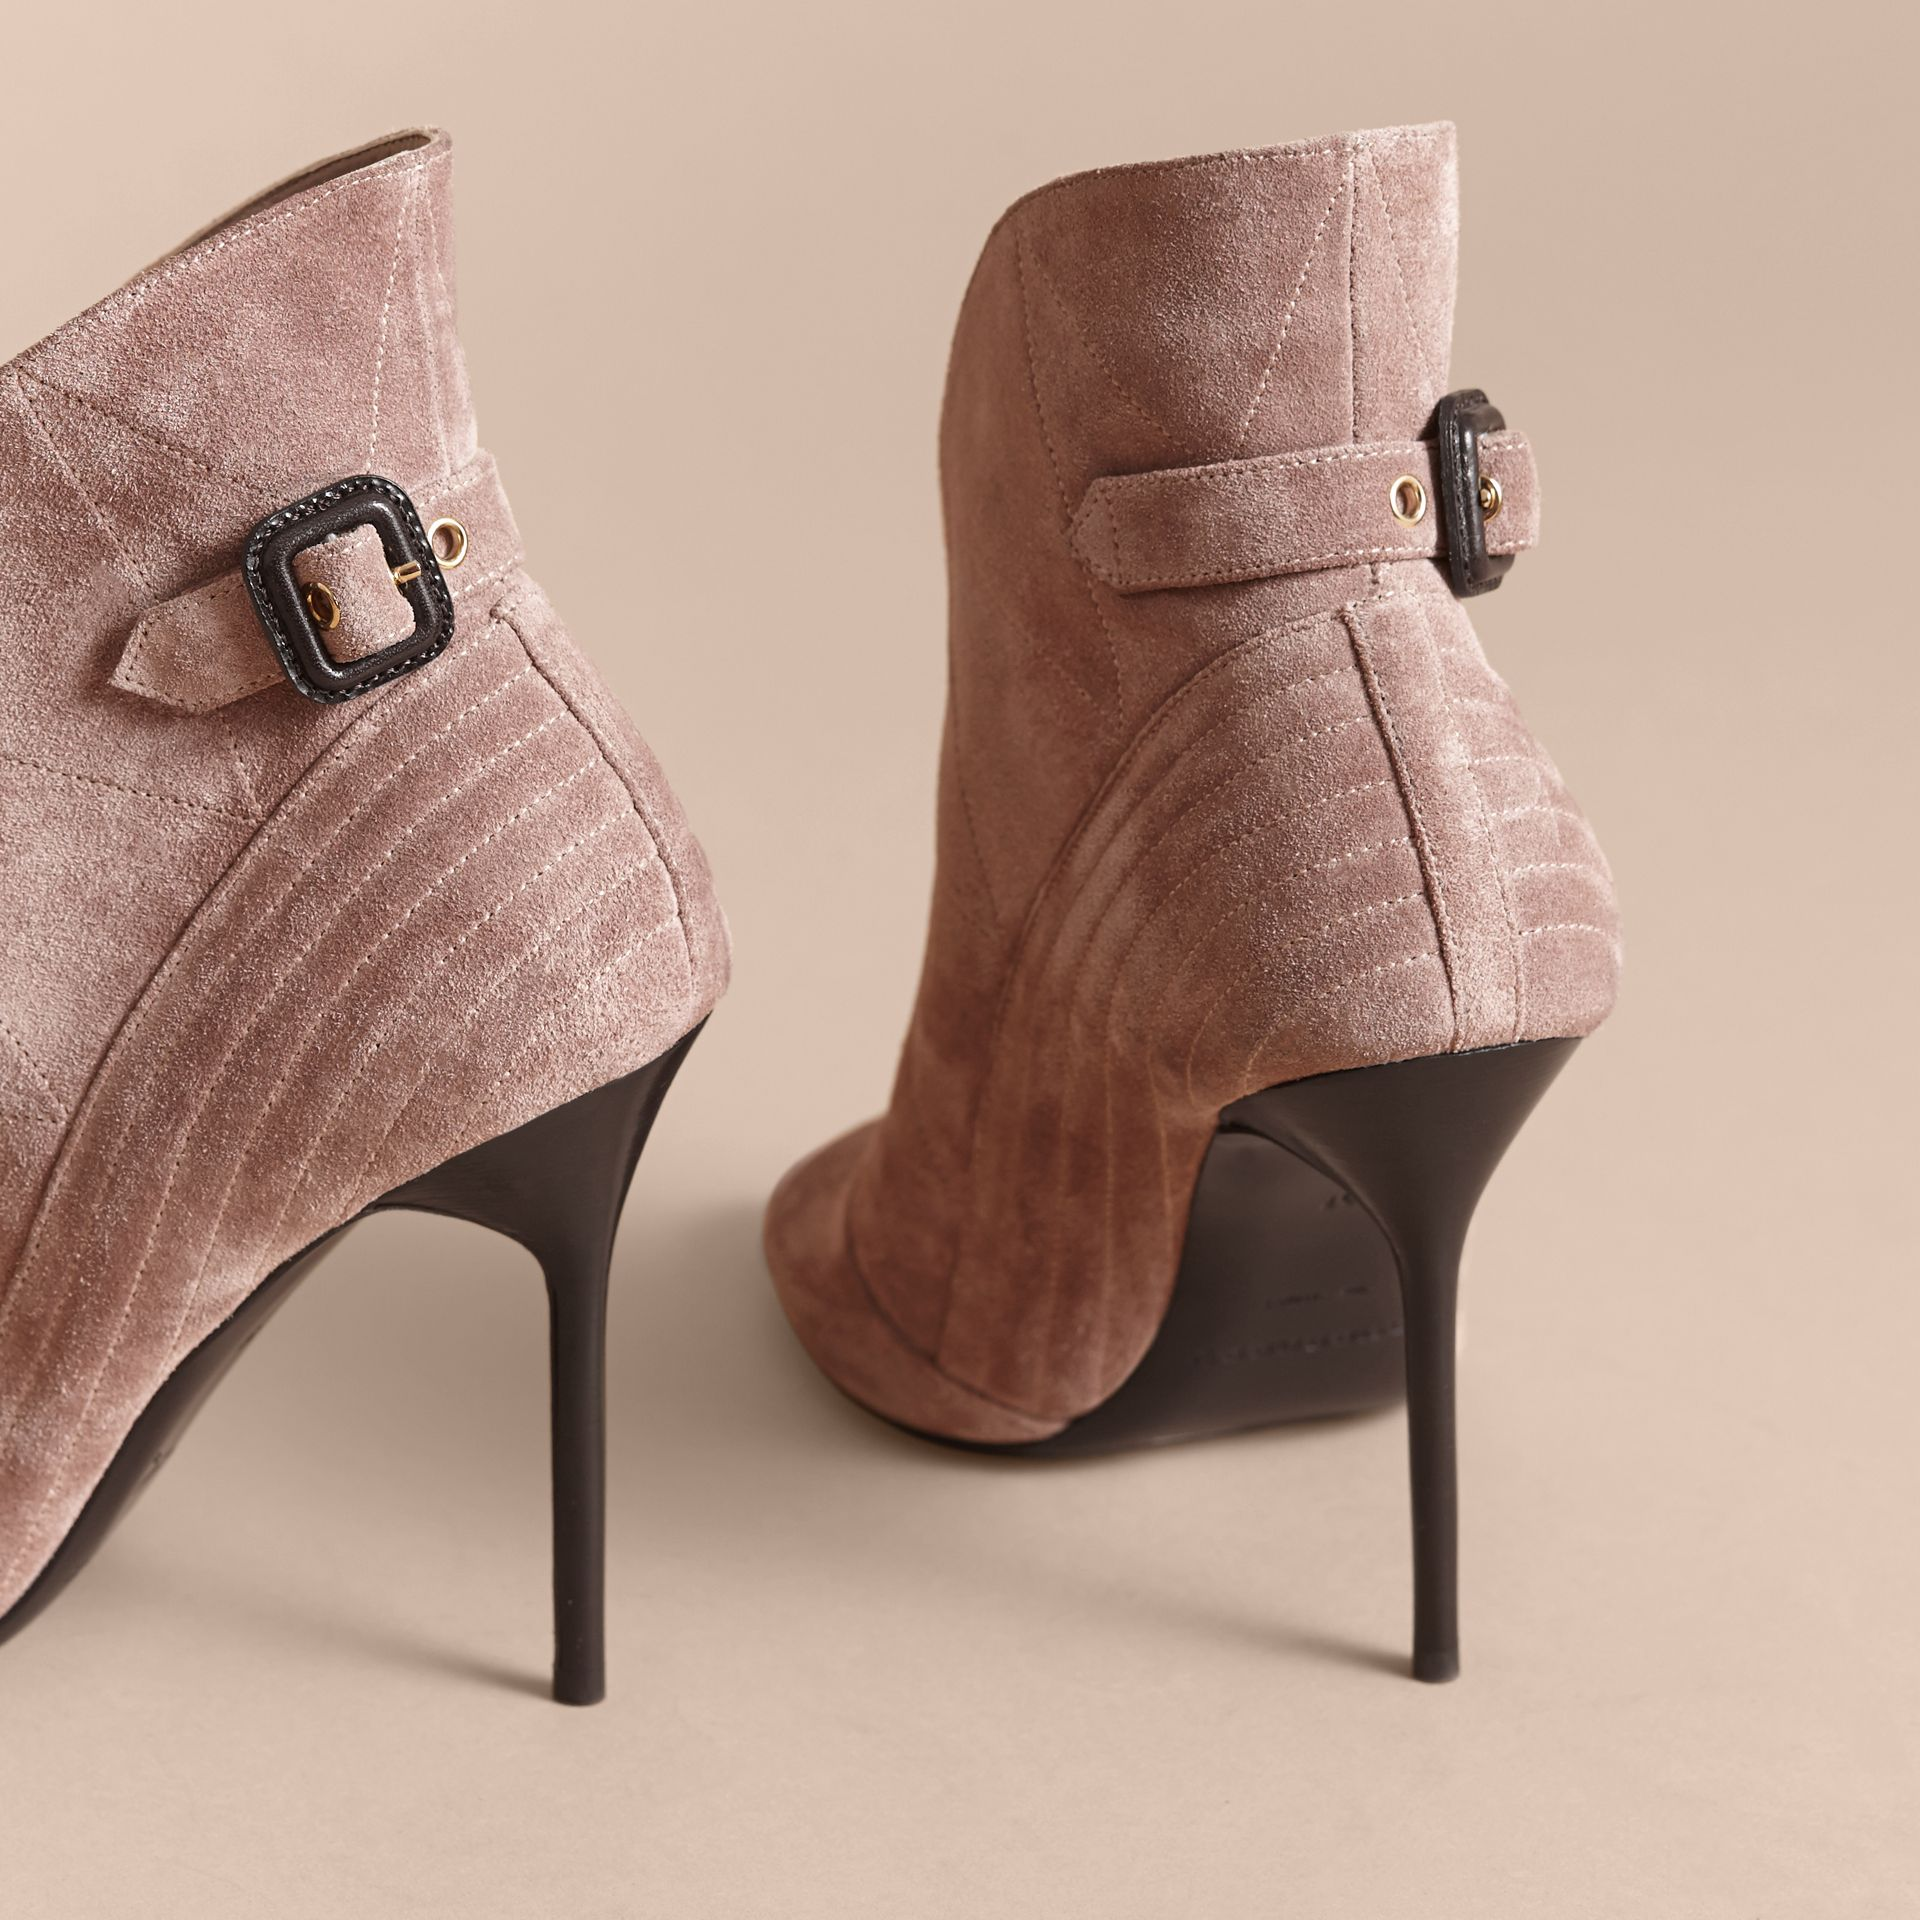 Buckle Detail Suede Peep-toe Ankle Boots in Ivory Pink - Women | Burberry - gallery image 4